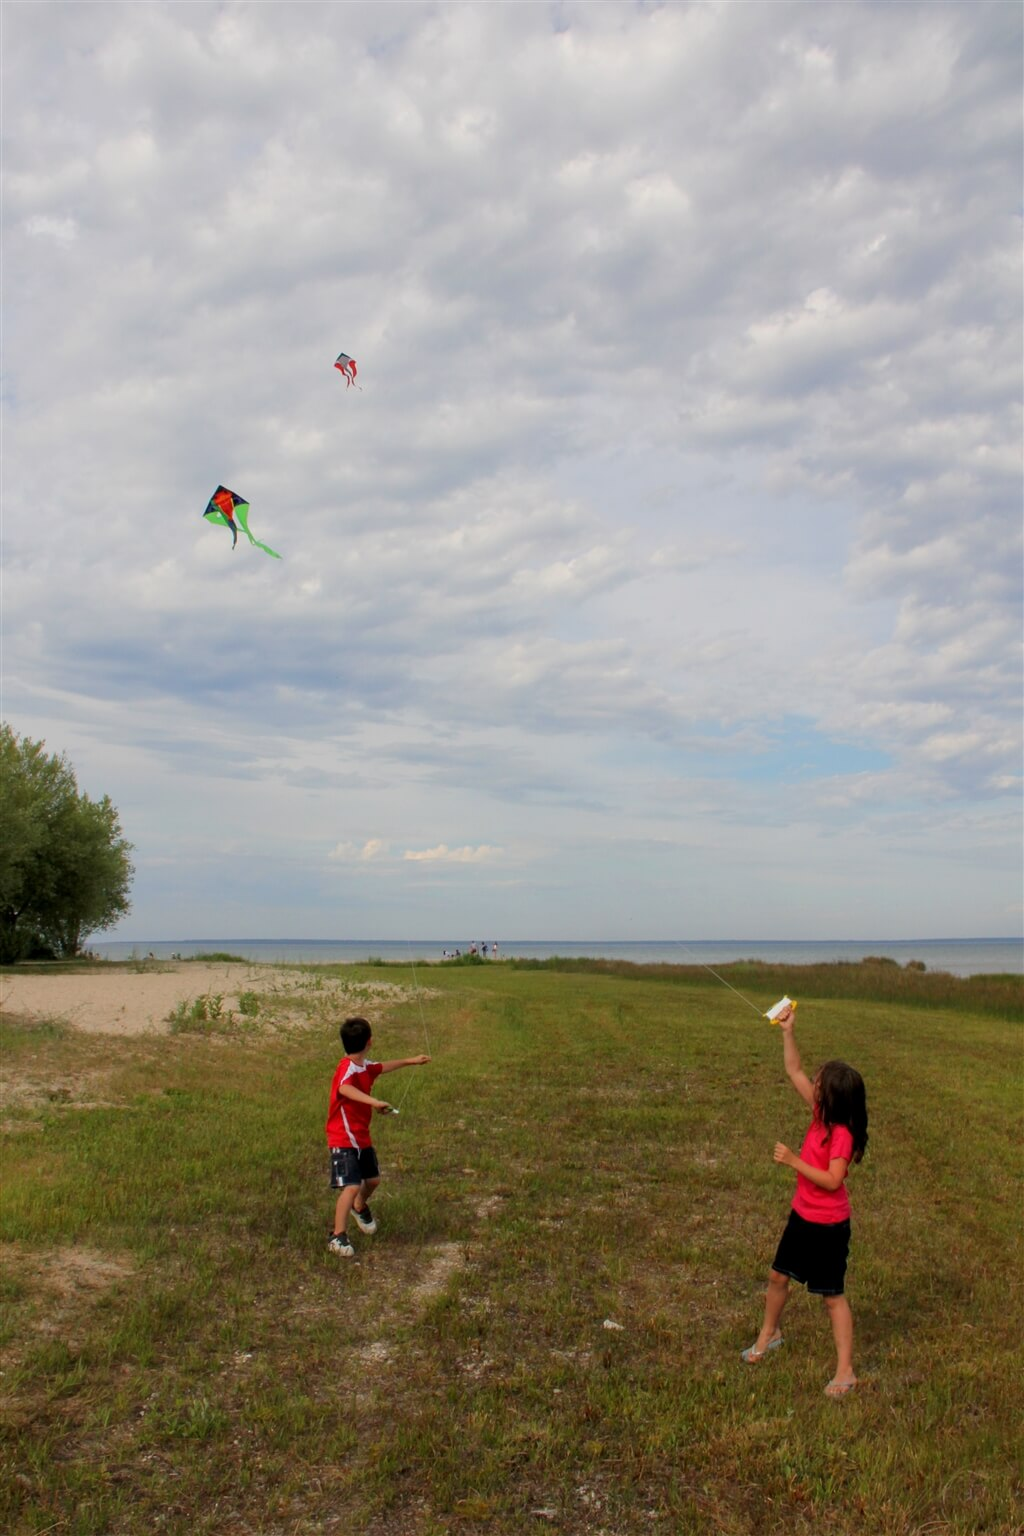 Photo of people flying kites at Mackinaw Mill Creek Camping in Mackinaw City, MI. © 2016 Frank Rogala.